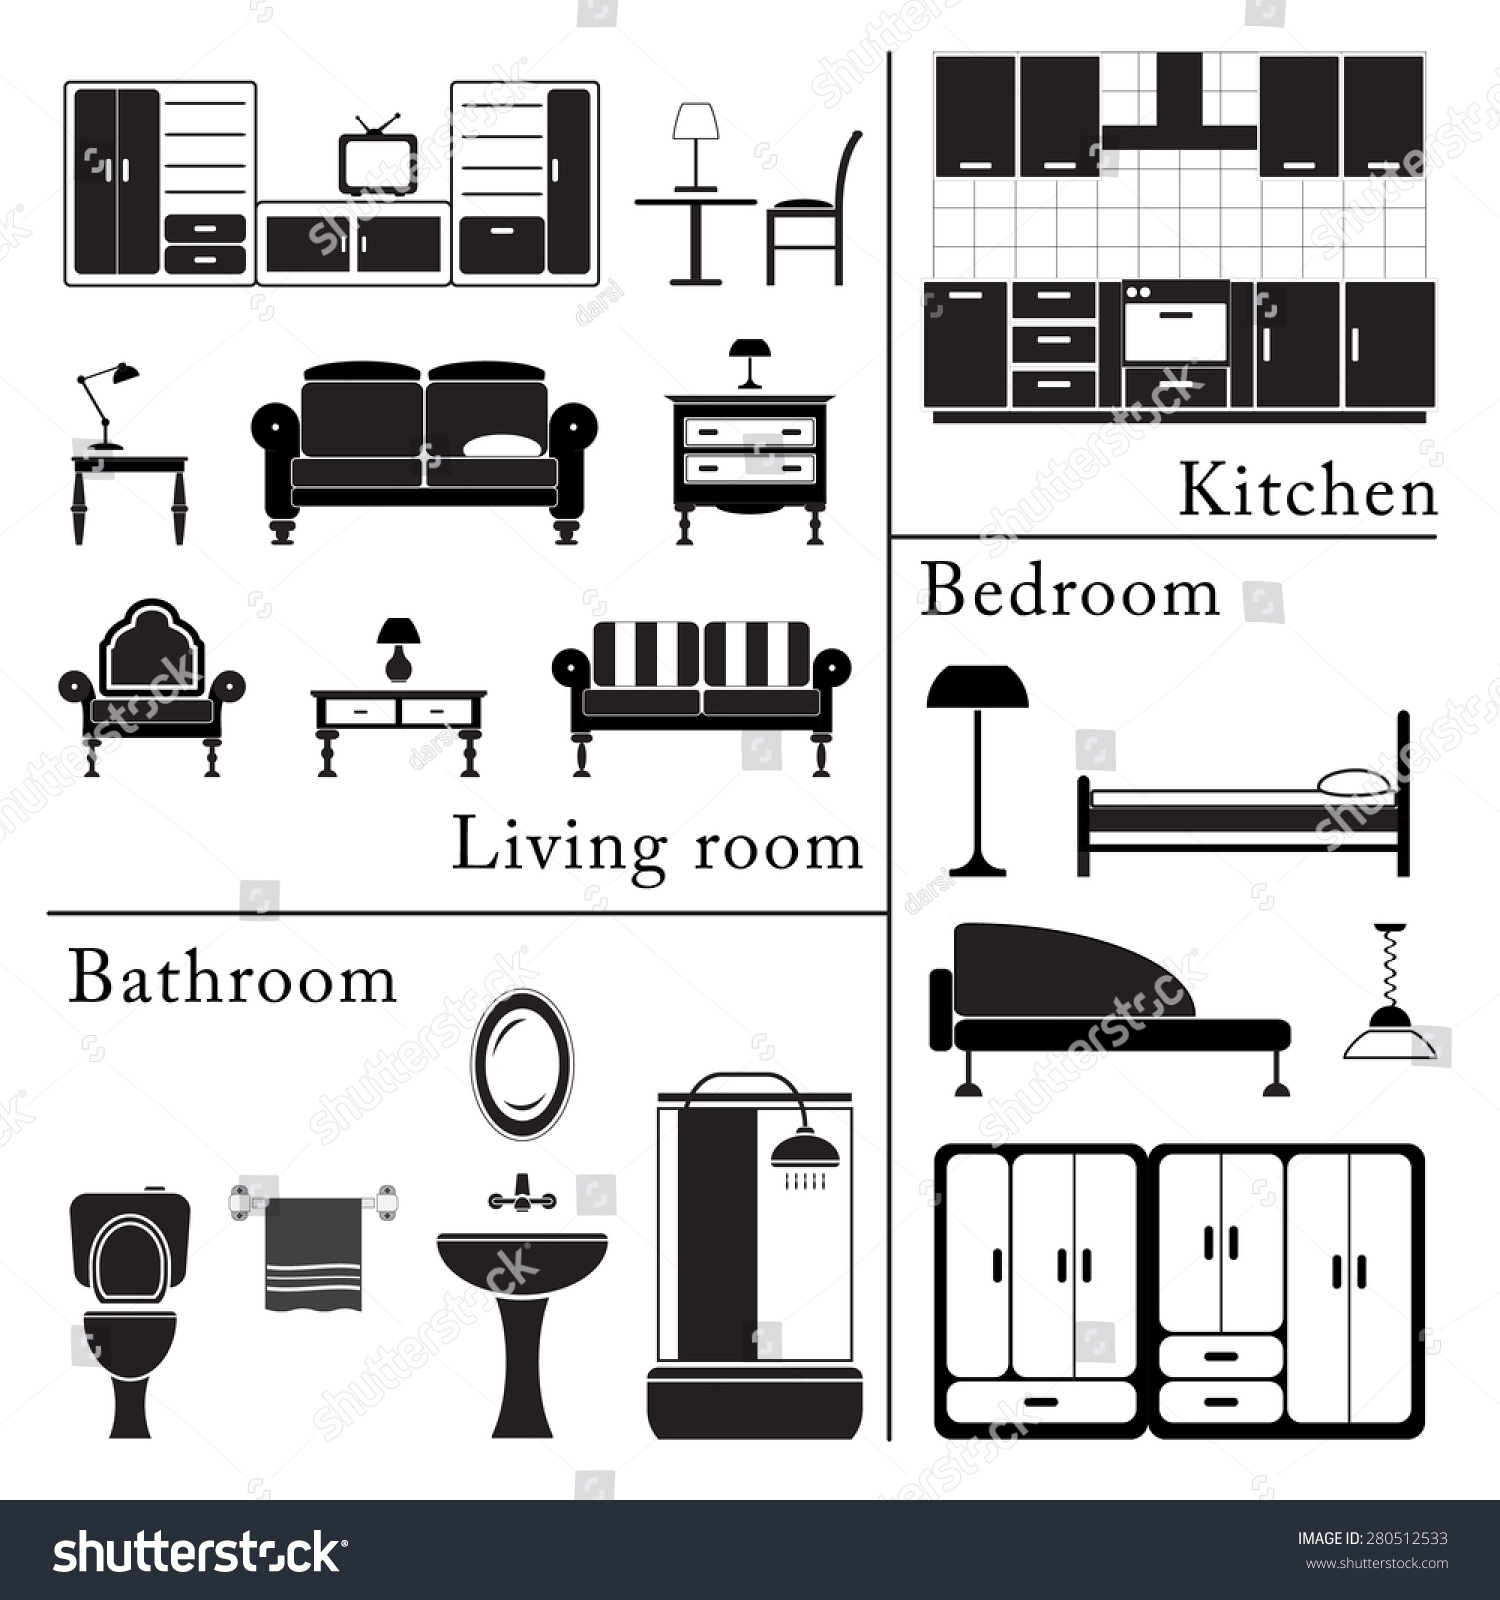 living room bedroom bathroom kitchen home furniture icons set living room bedroom kitchen 18975